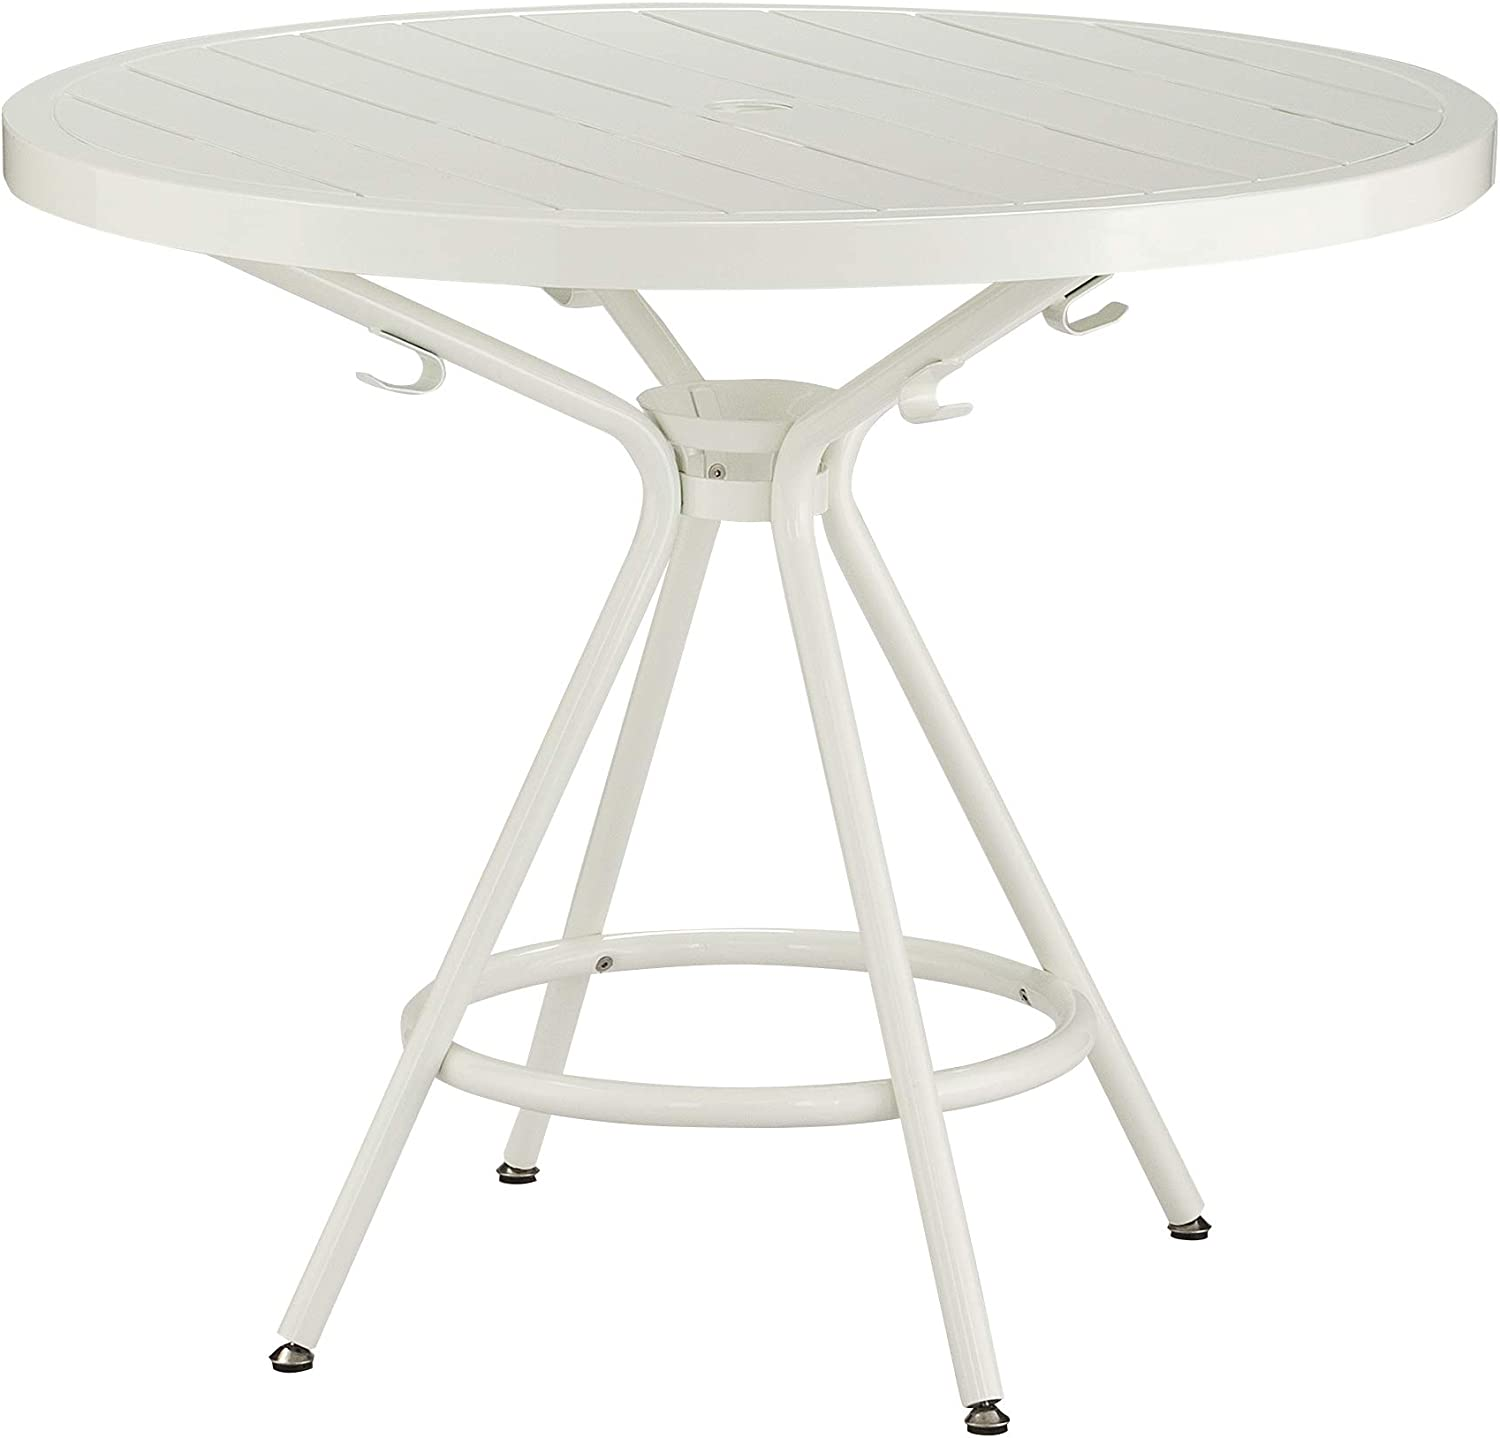 "Safco Products CoGo Steel Indoor/Outdoor Table, 36"" Round, White"